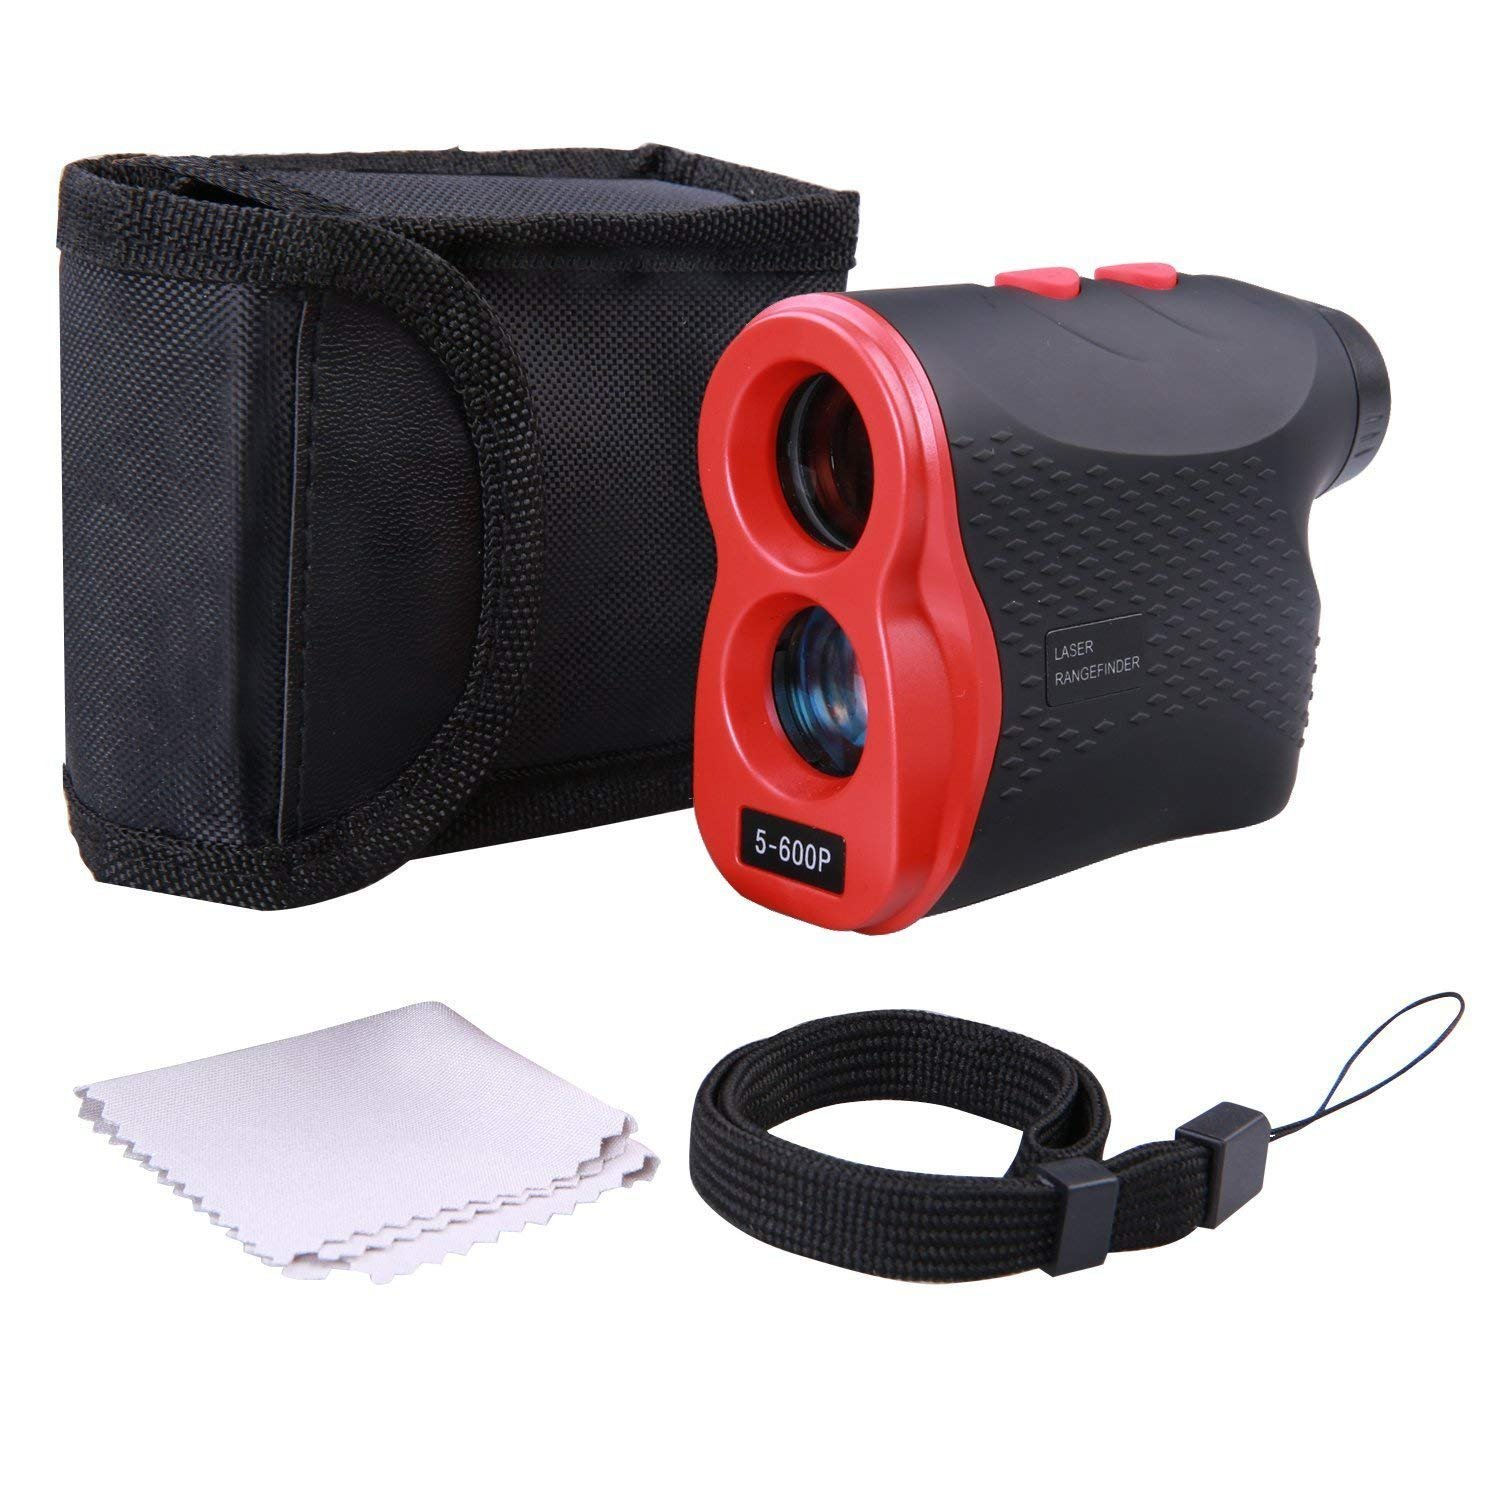 Golf Rangefinder,Laser Range Finder with Golf Distance for Horizontal Distance Height Speed Measurement, Golf Laser Rangefinder